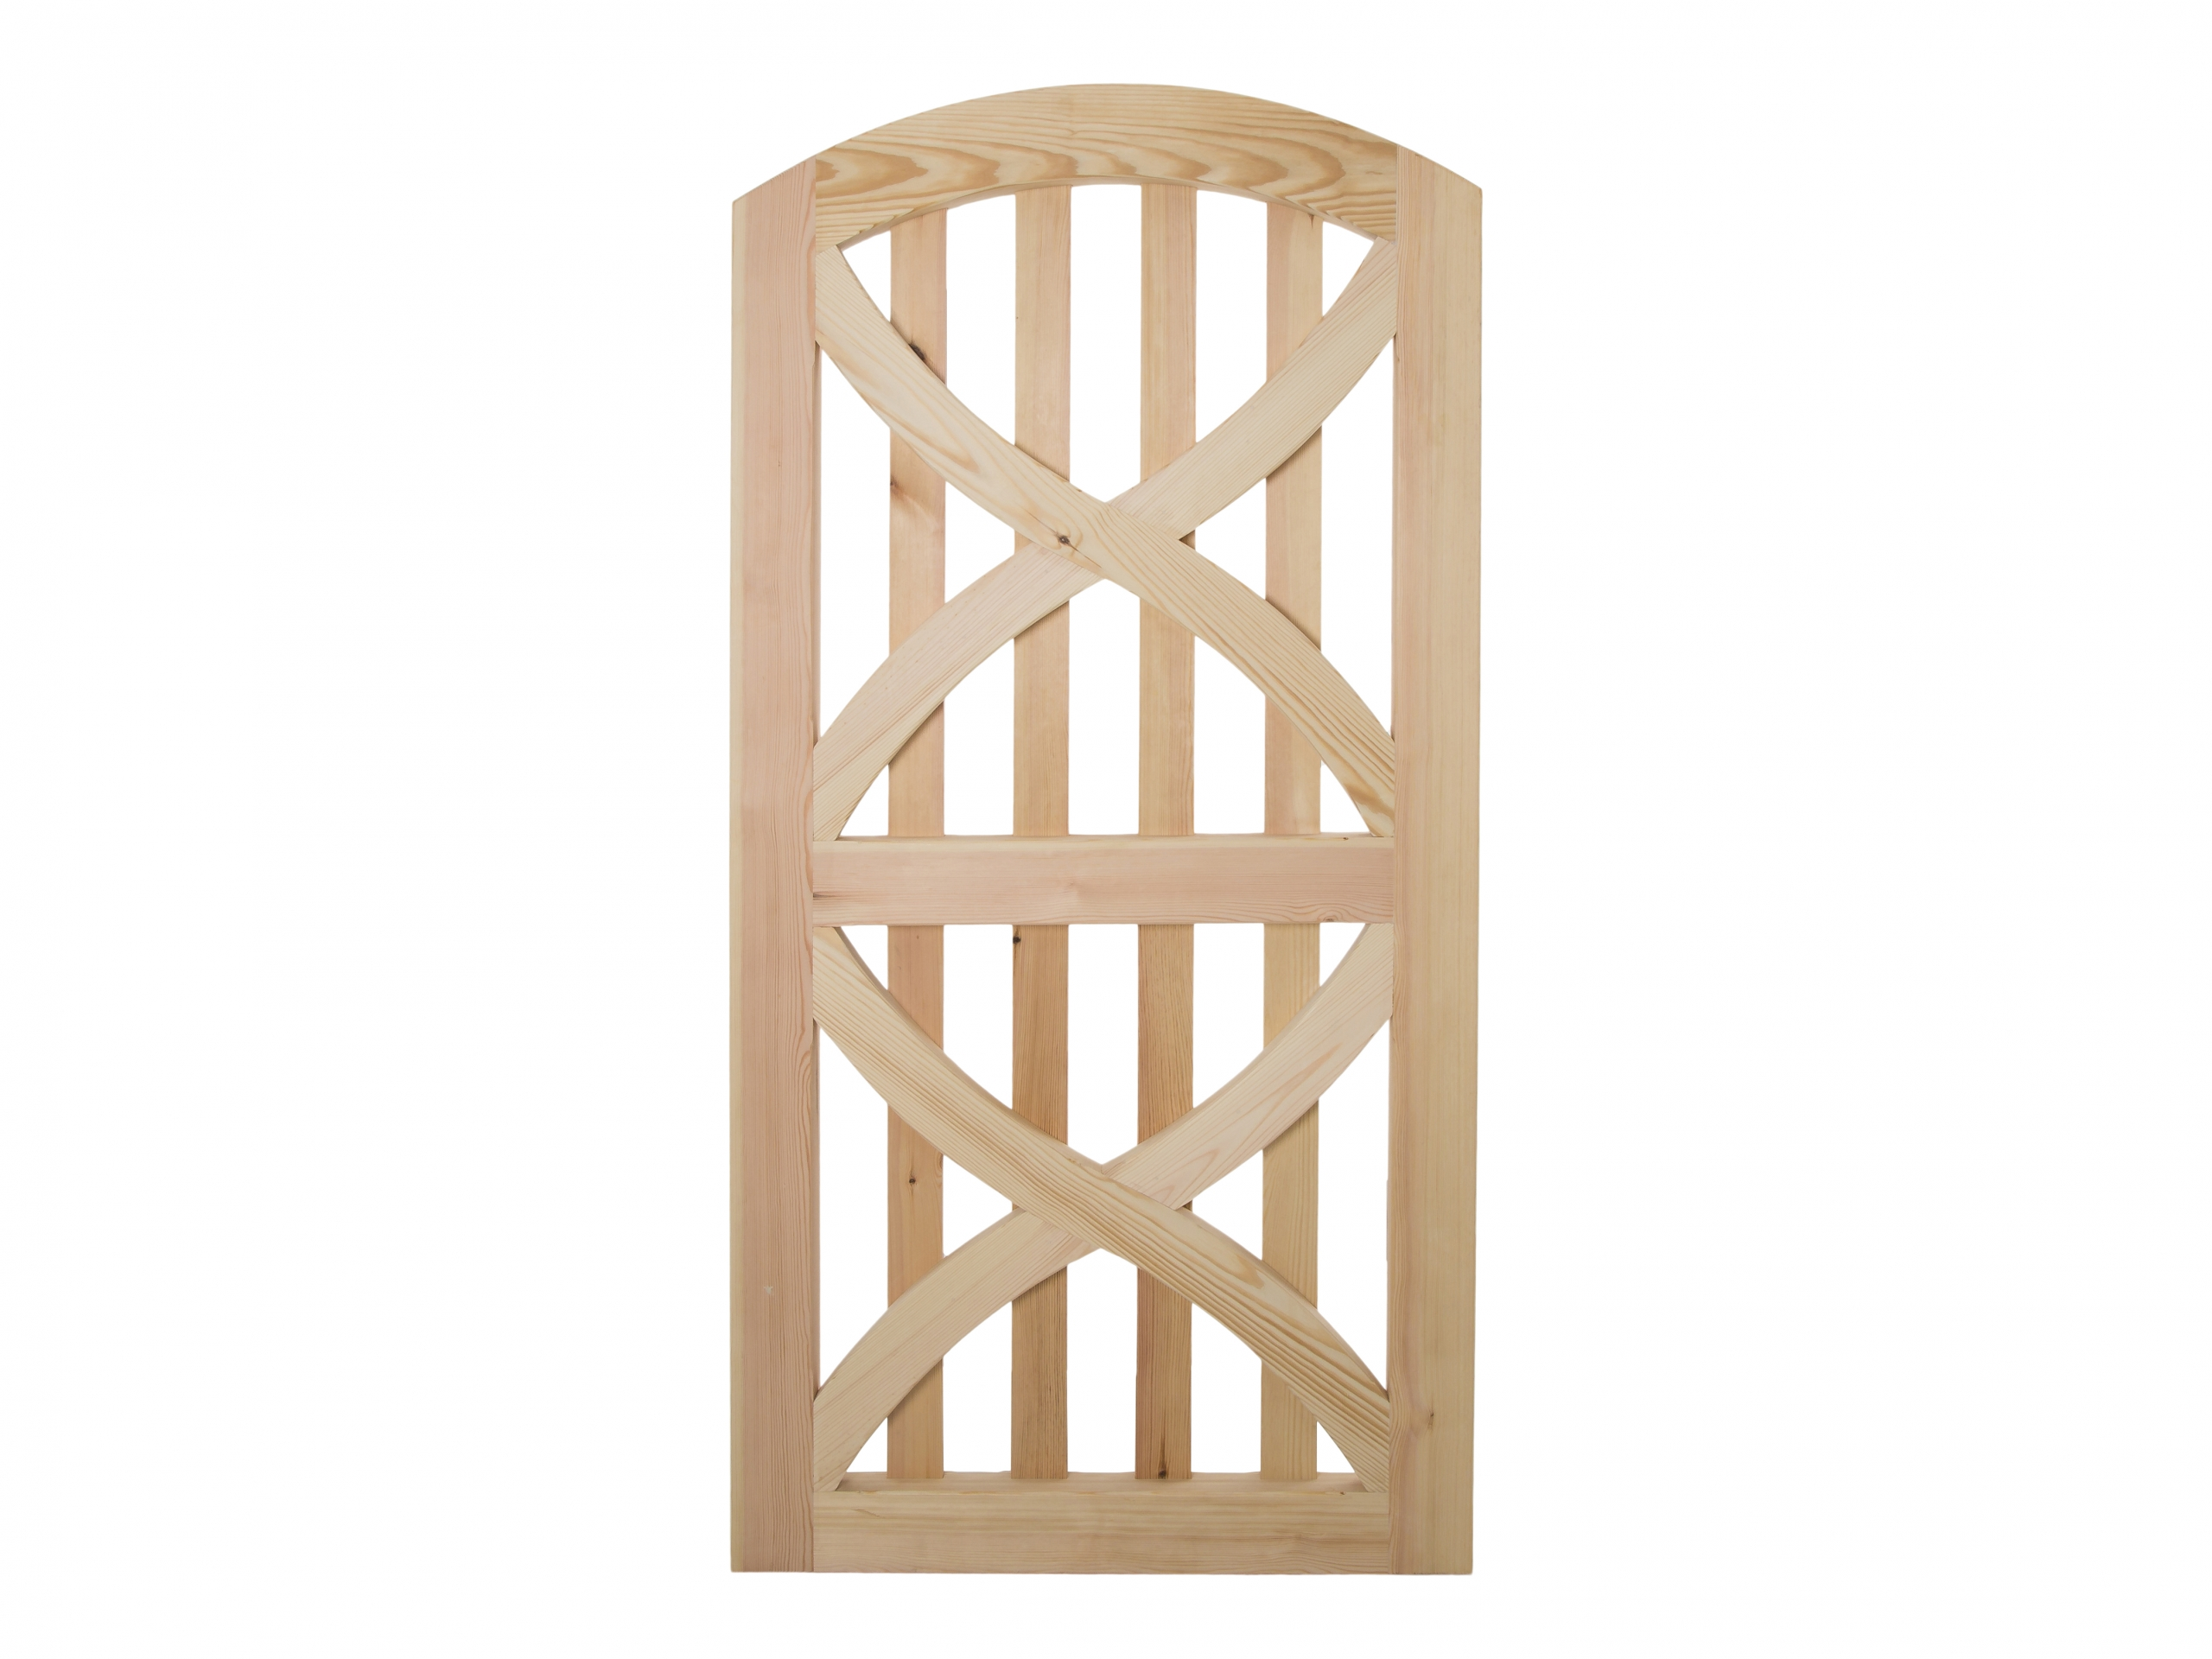 Single tall Linton gate with curved top and curved braces and uprights